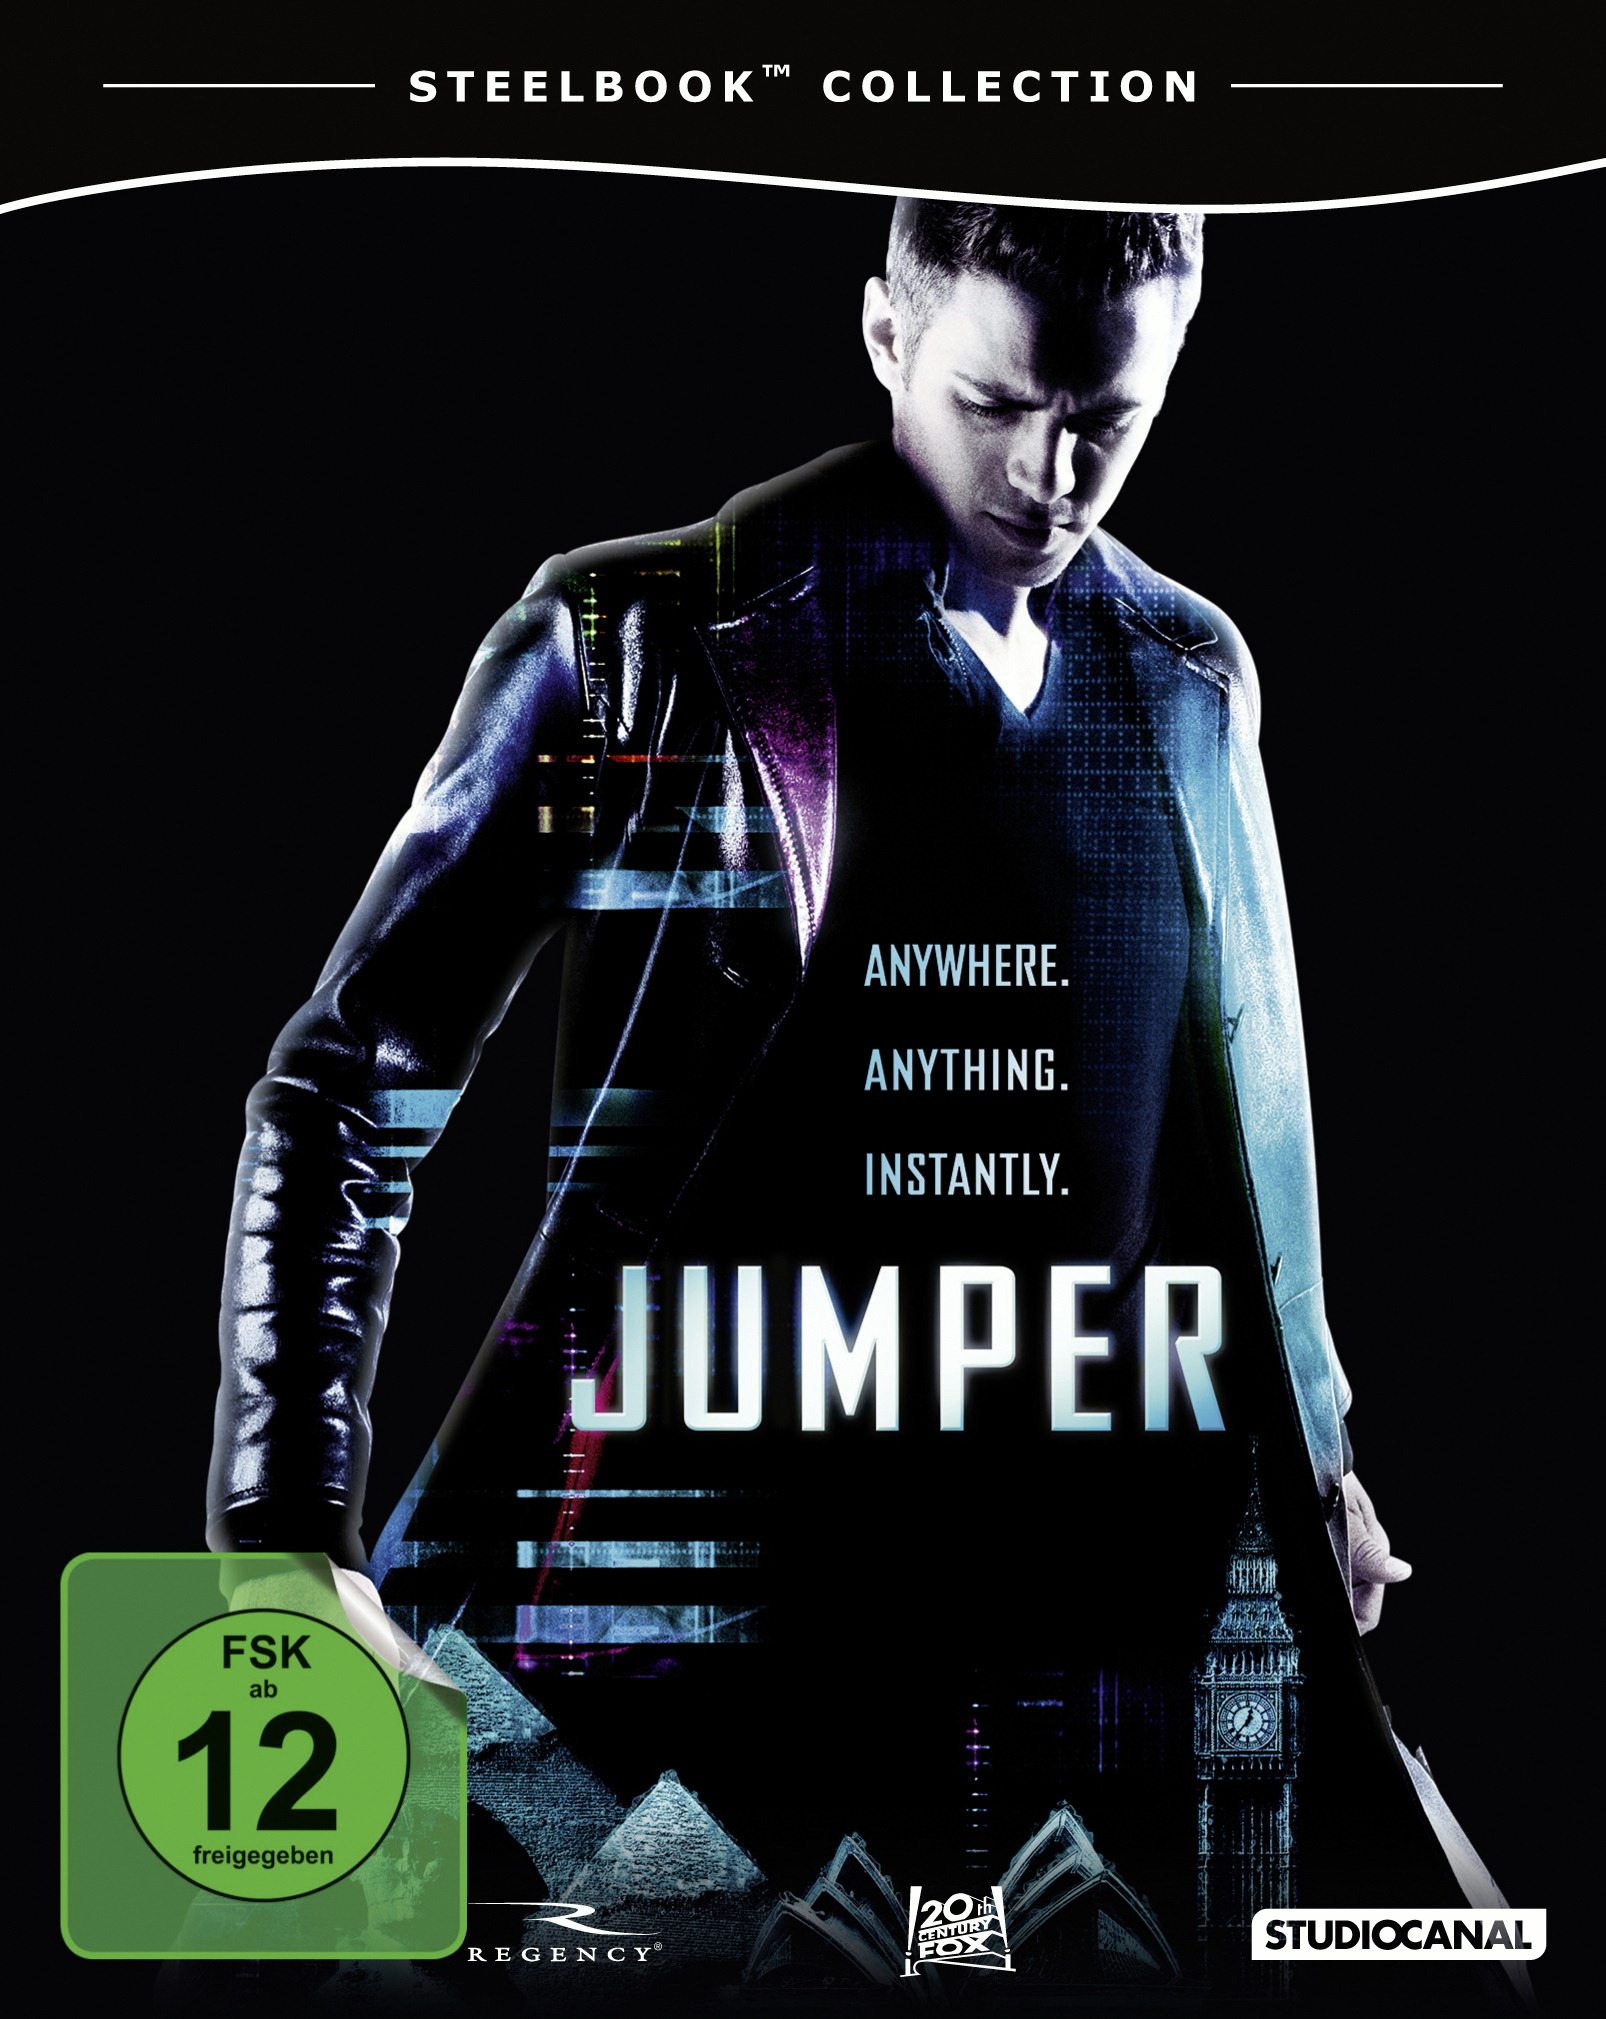 Jumper (Steelbook Collection) Poster